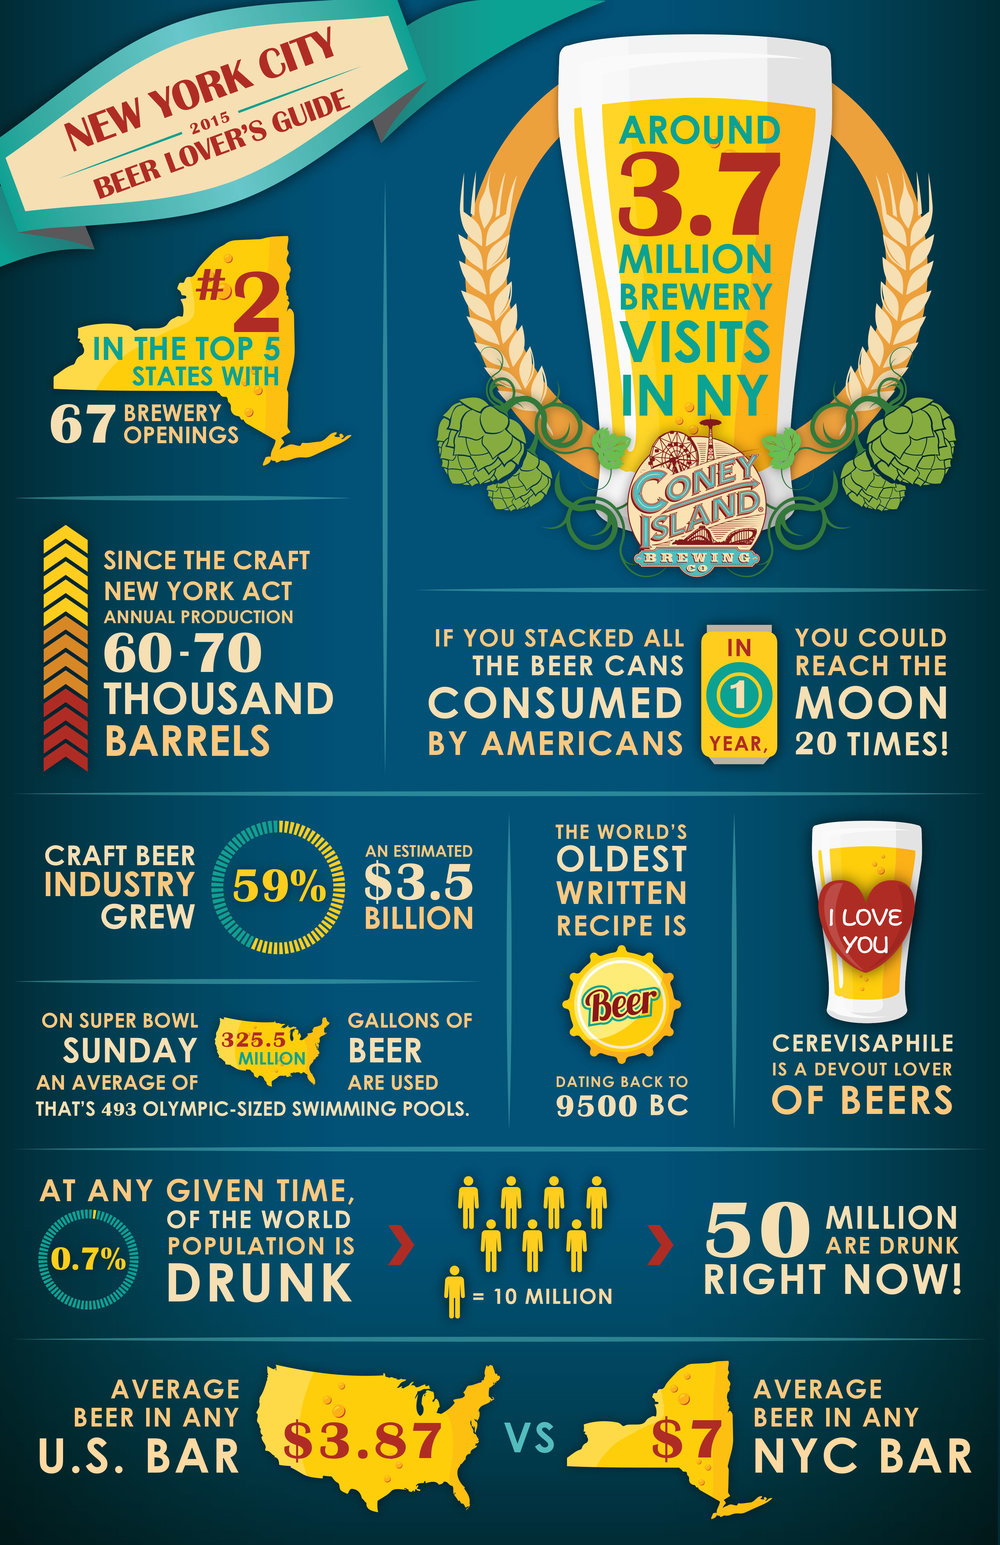 Infographic_Coney Island_style-A-1.jpg